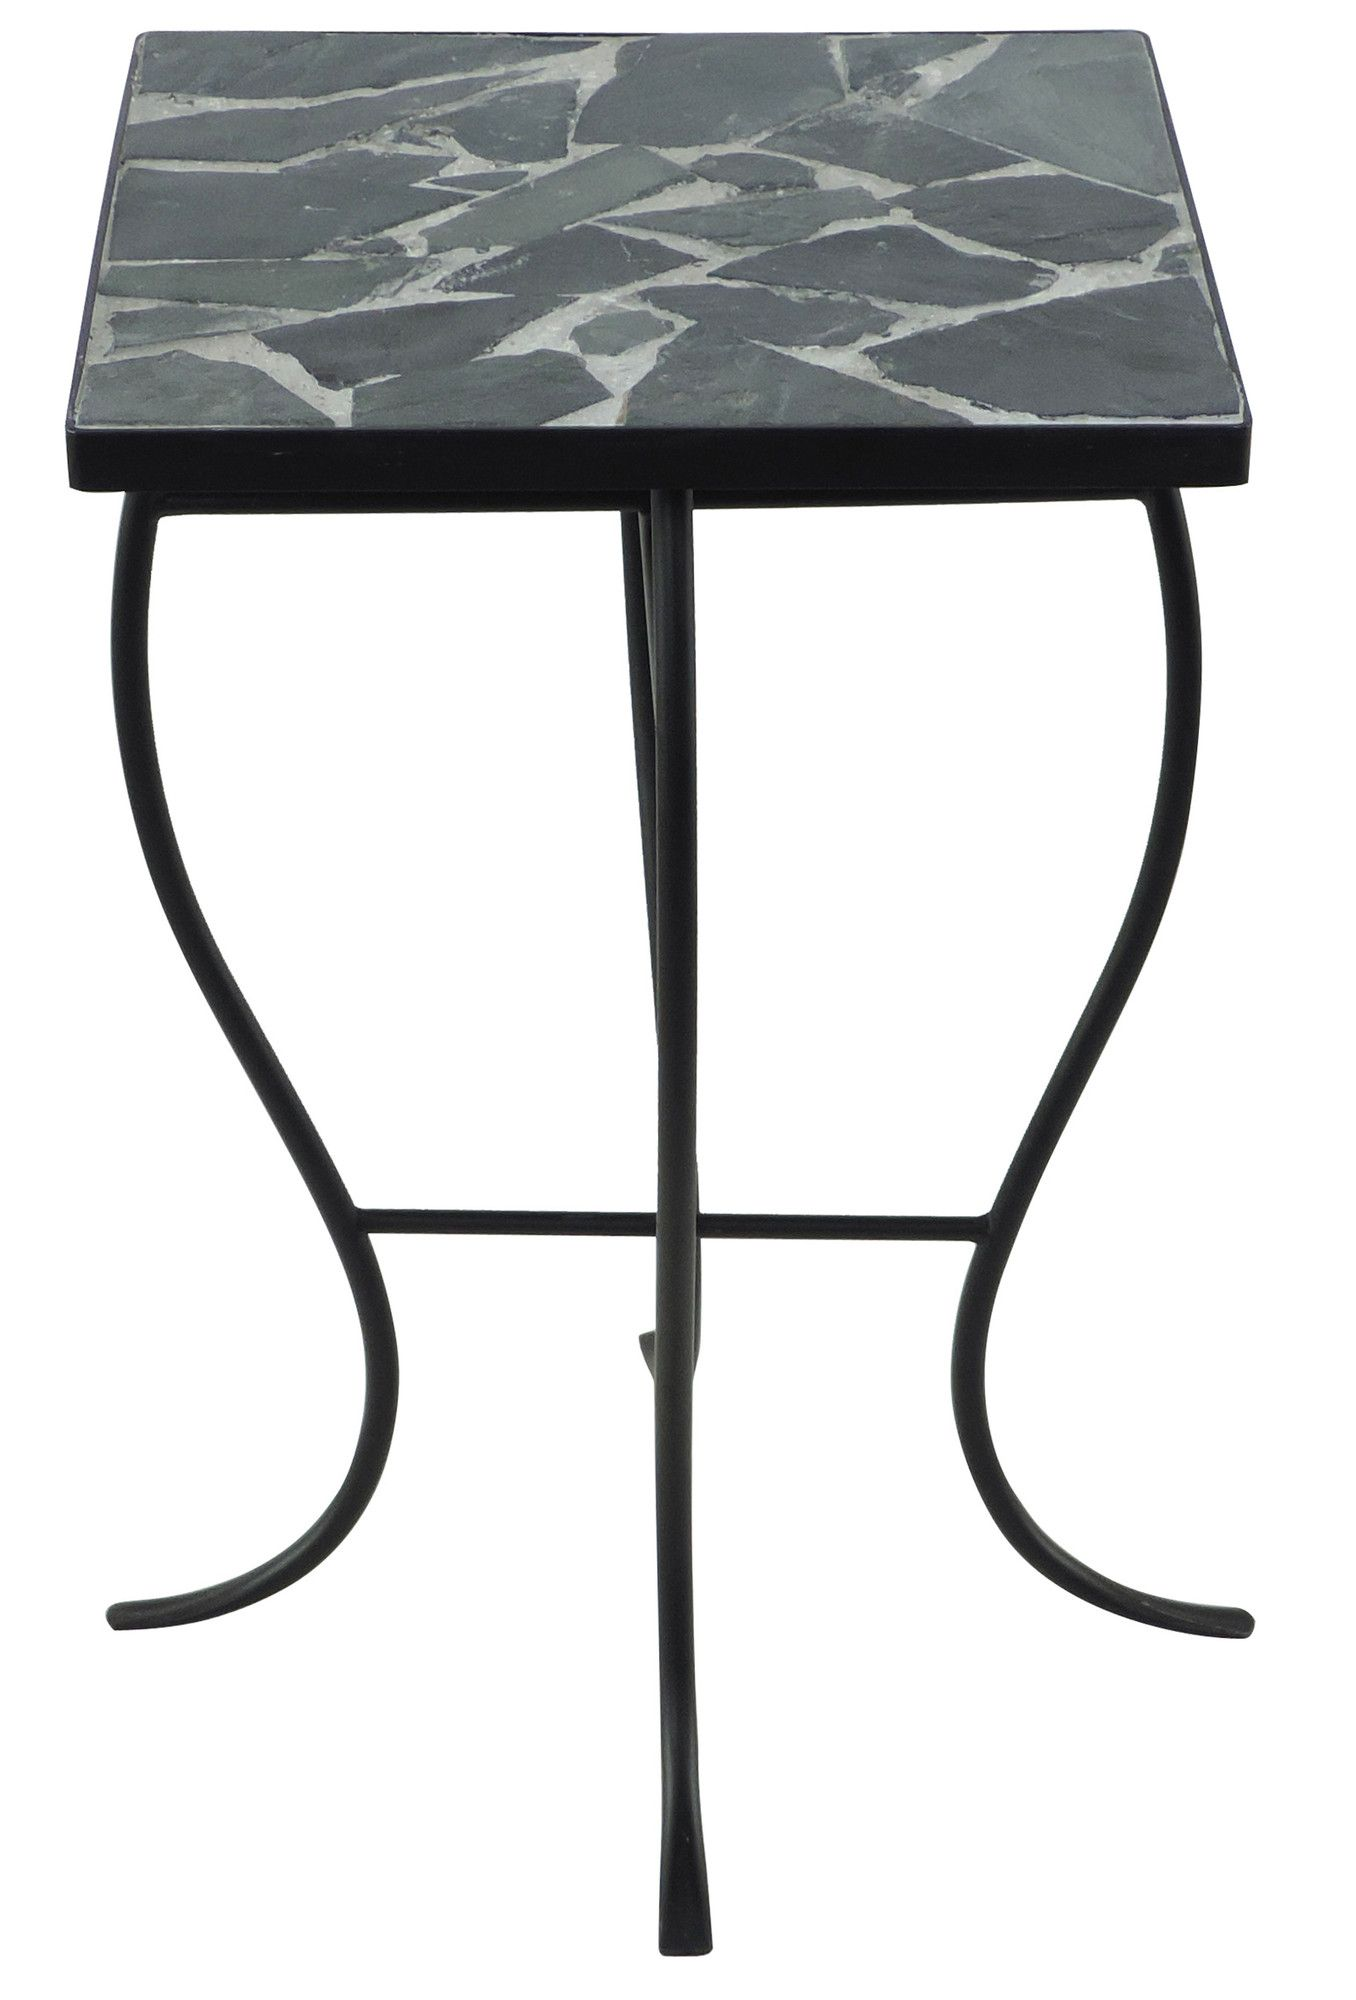 Square Stone Top Metal End Table With Images Metal End Tables